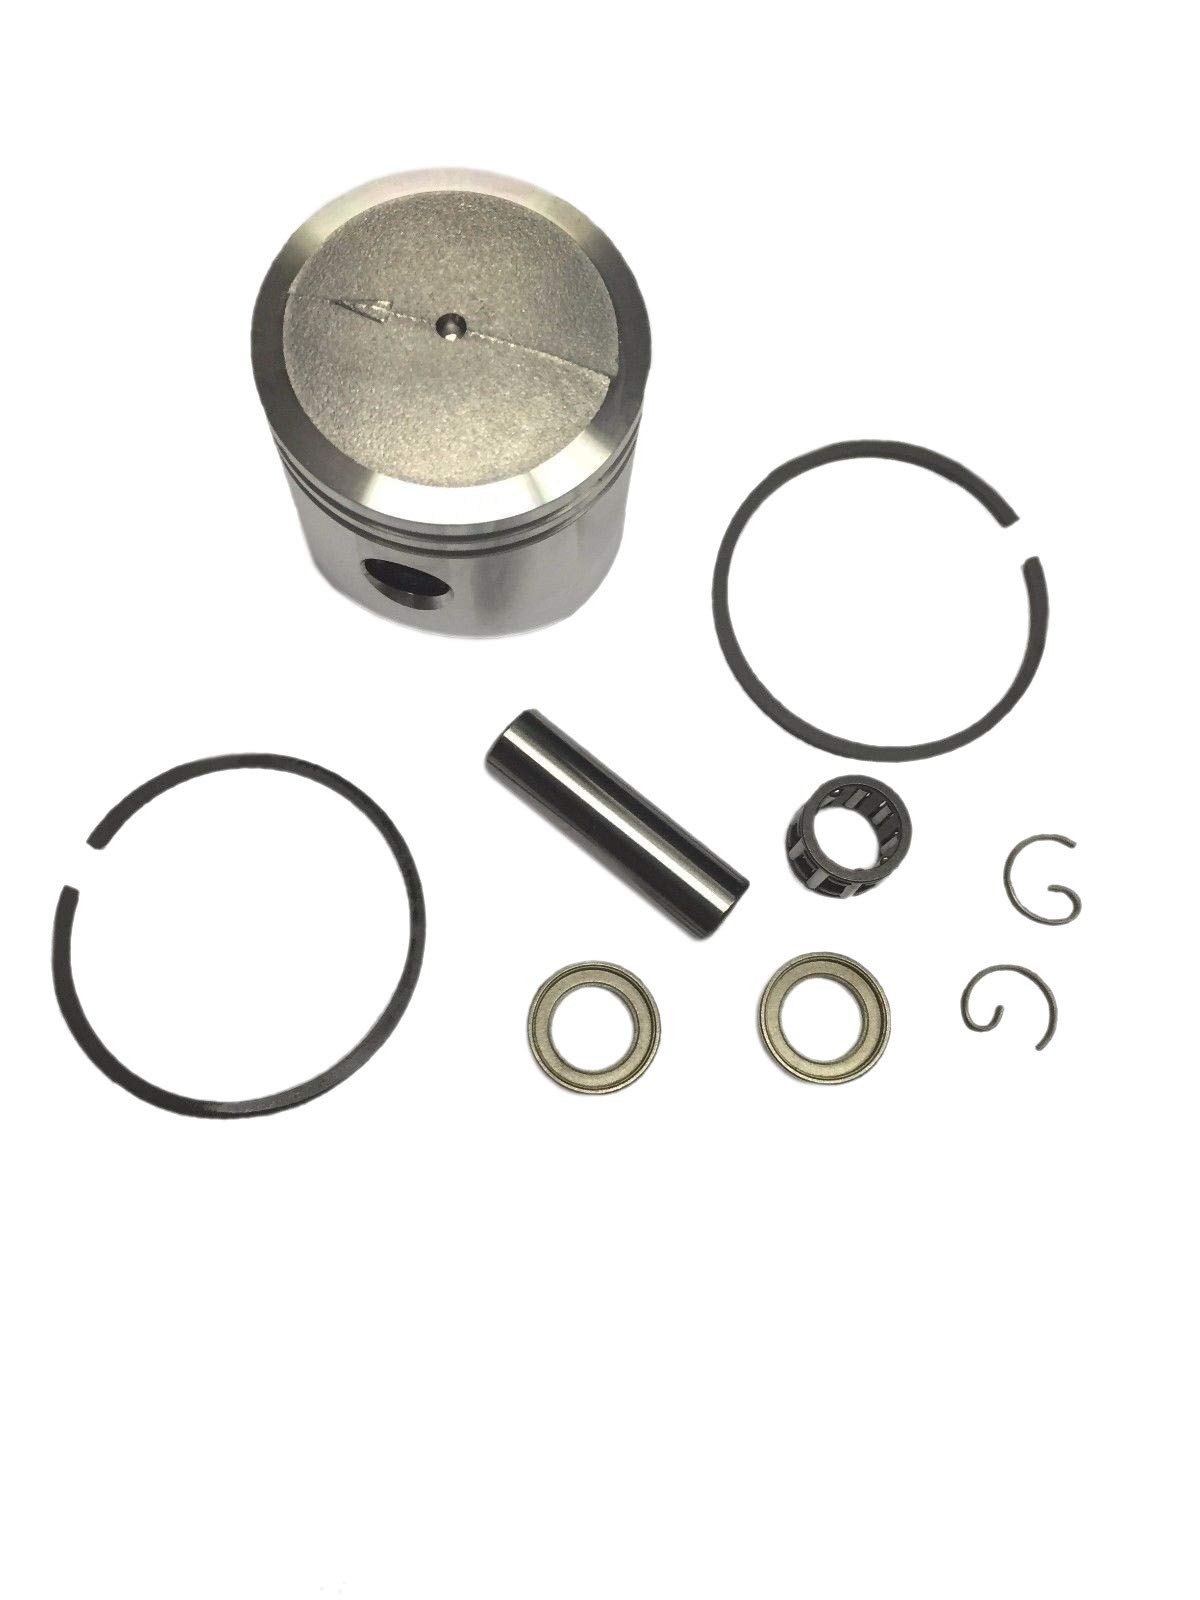 Genuine Echo P021004740 Piston Kit Fits PAS-260 SRM-260 PB-260L PB-261 PPT-260 Agricultural Machinery by Agricultural machinery parts